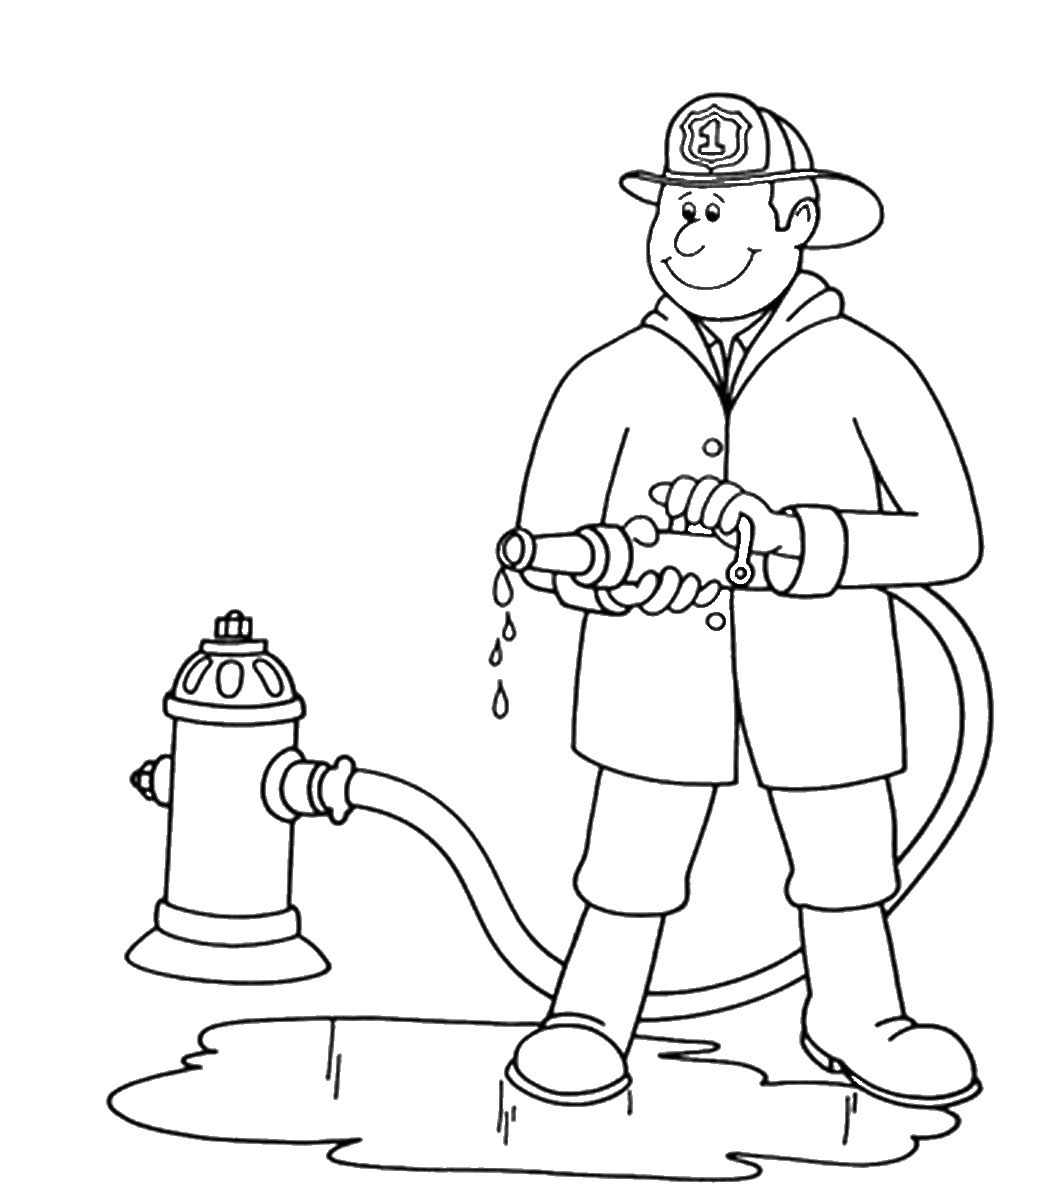 1053x1200 Firefighter Coloring Page Paginone.biz